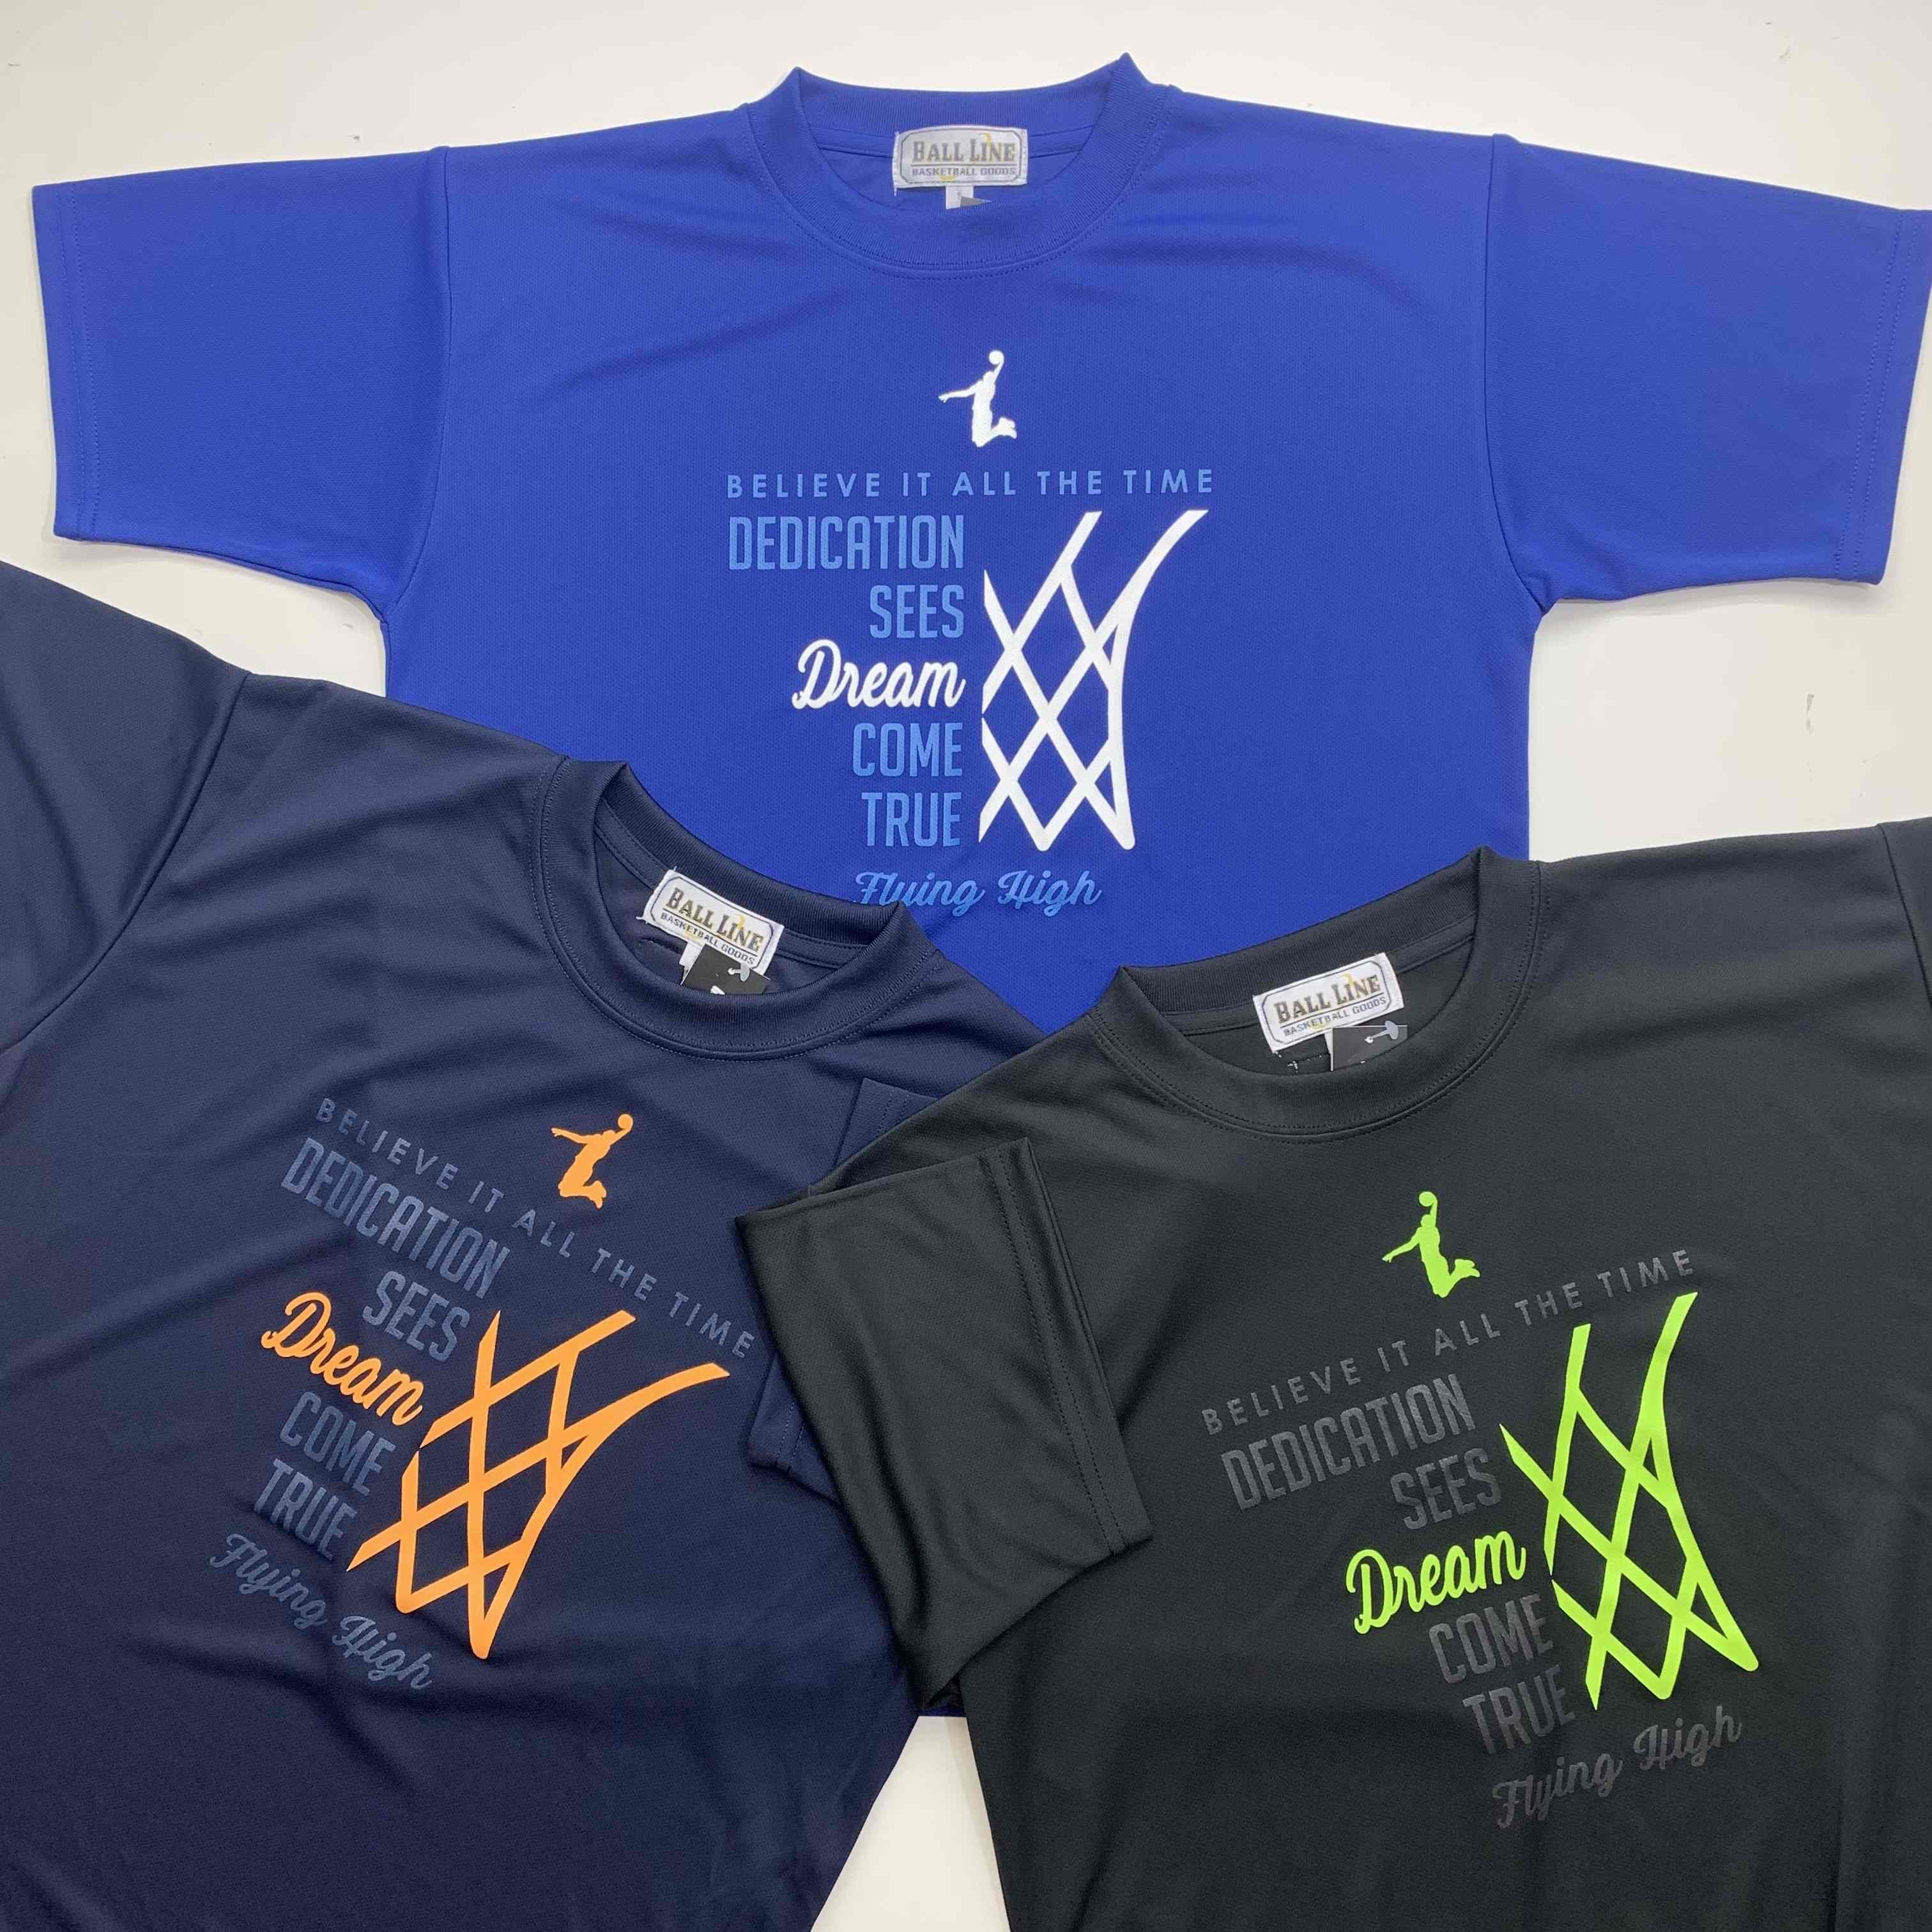 FHT-2110 /【2021春夏新作】 / FLYING HIGH / フライングハイ / 当店限定商品 / BALL LINE(ボールライン)×STEP BY STEP / Tシャツ